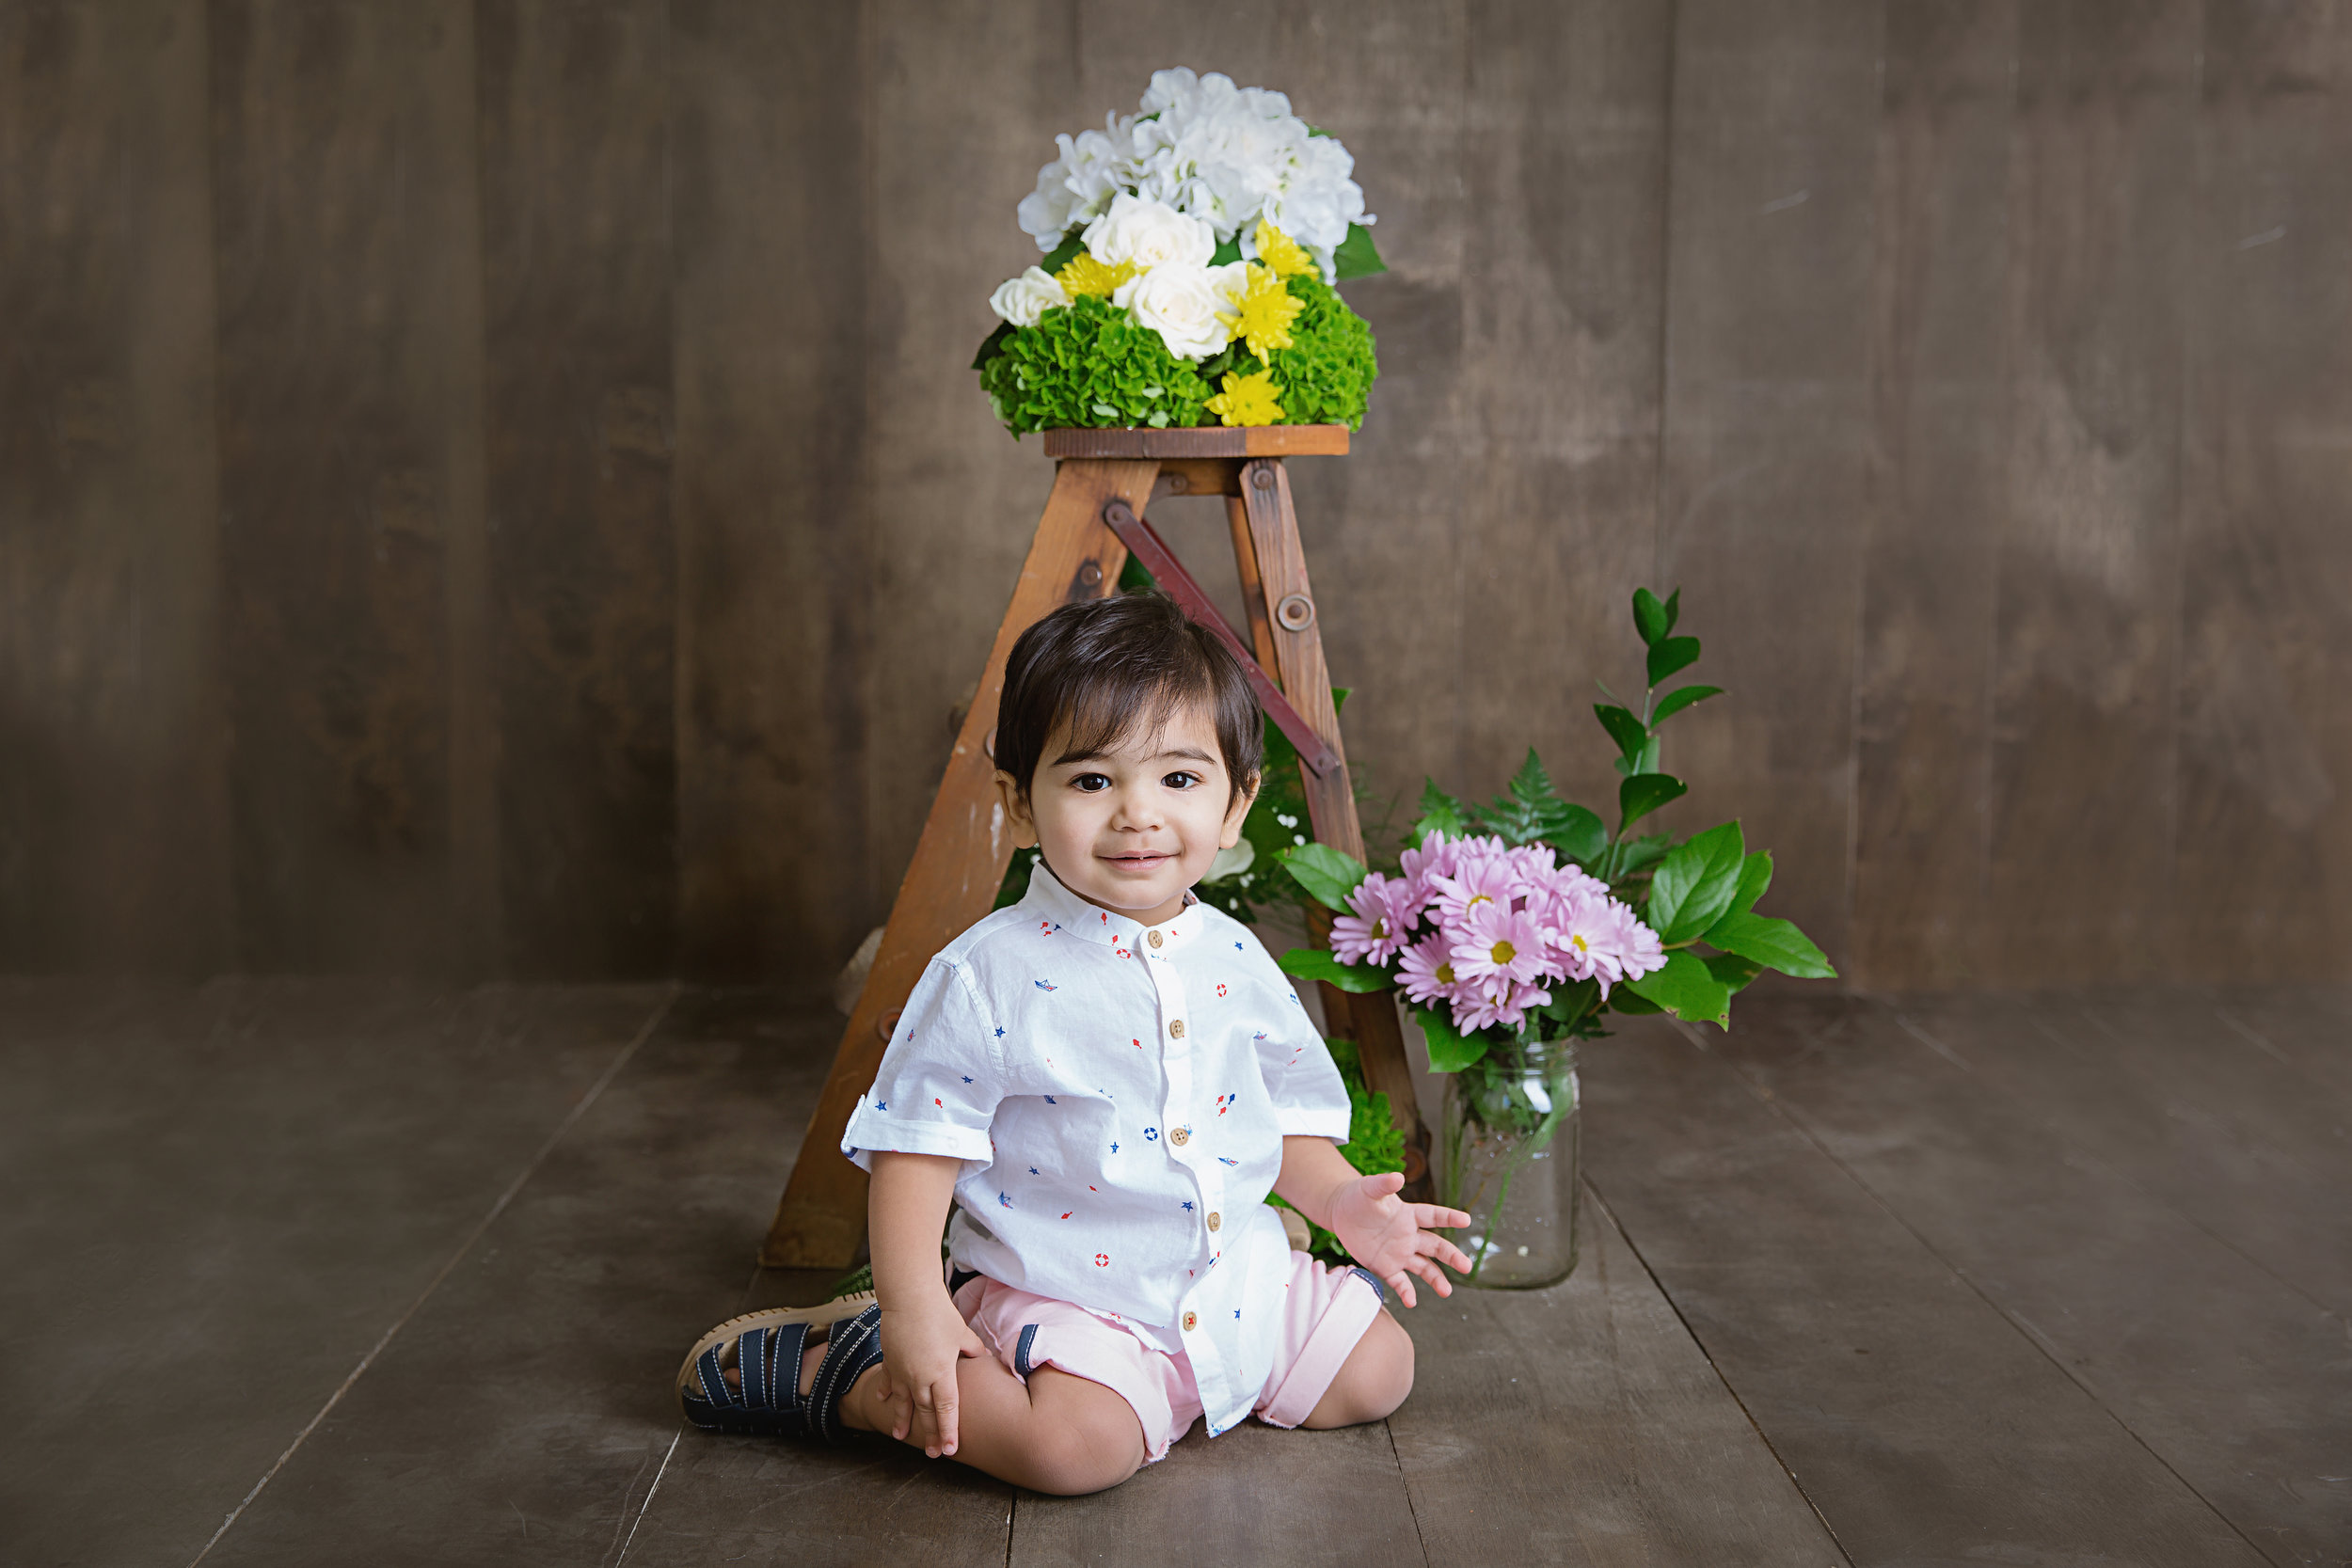 sitting with the flowers